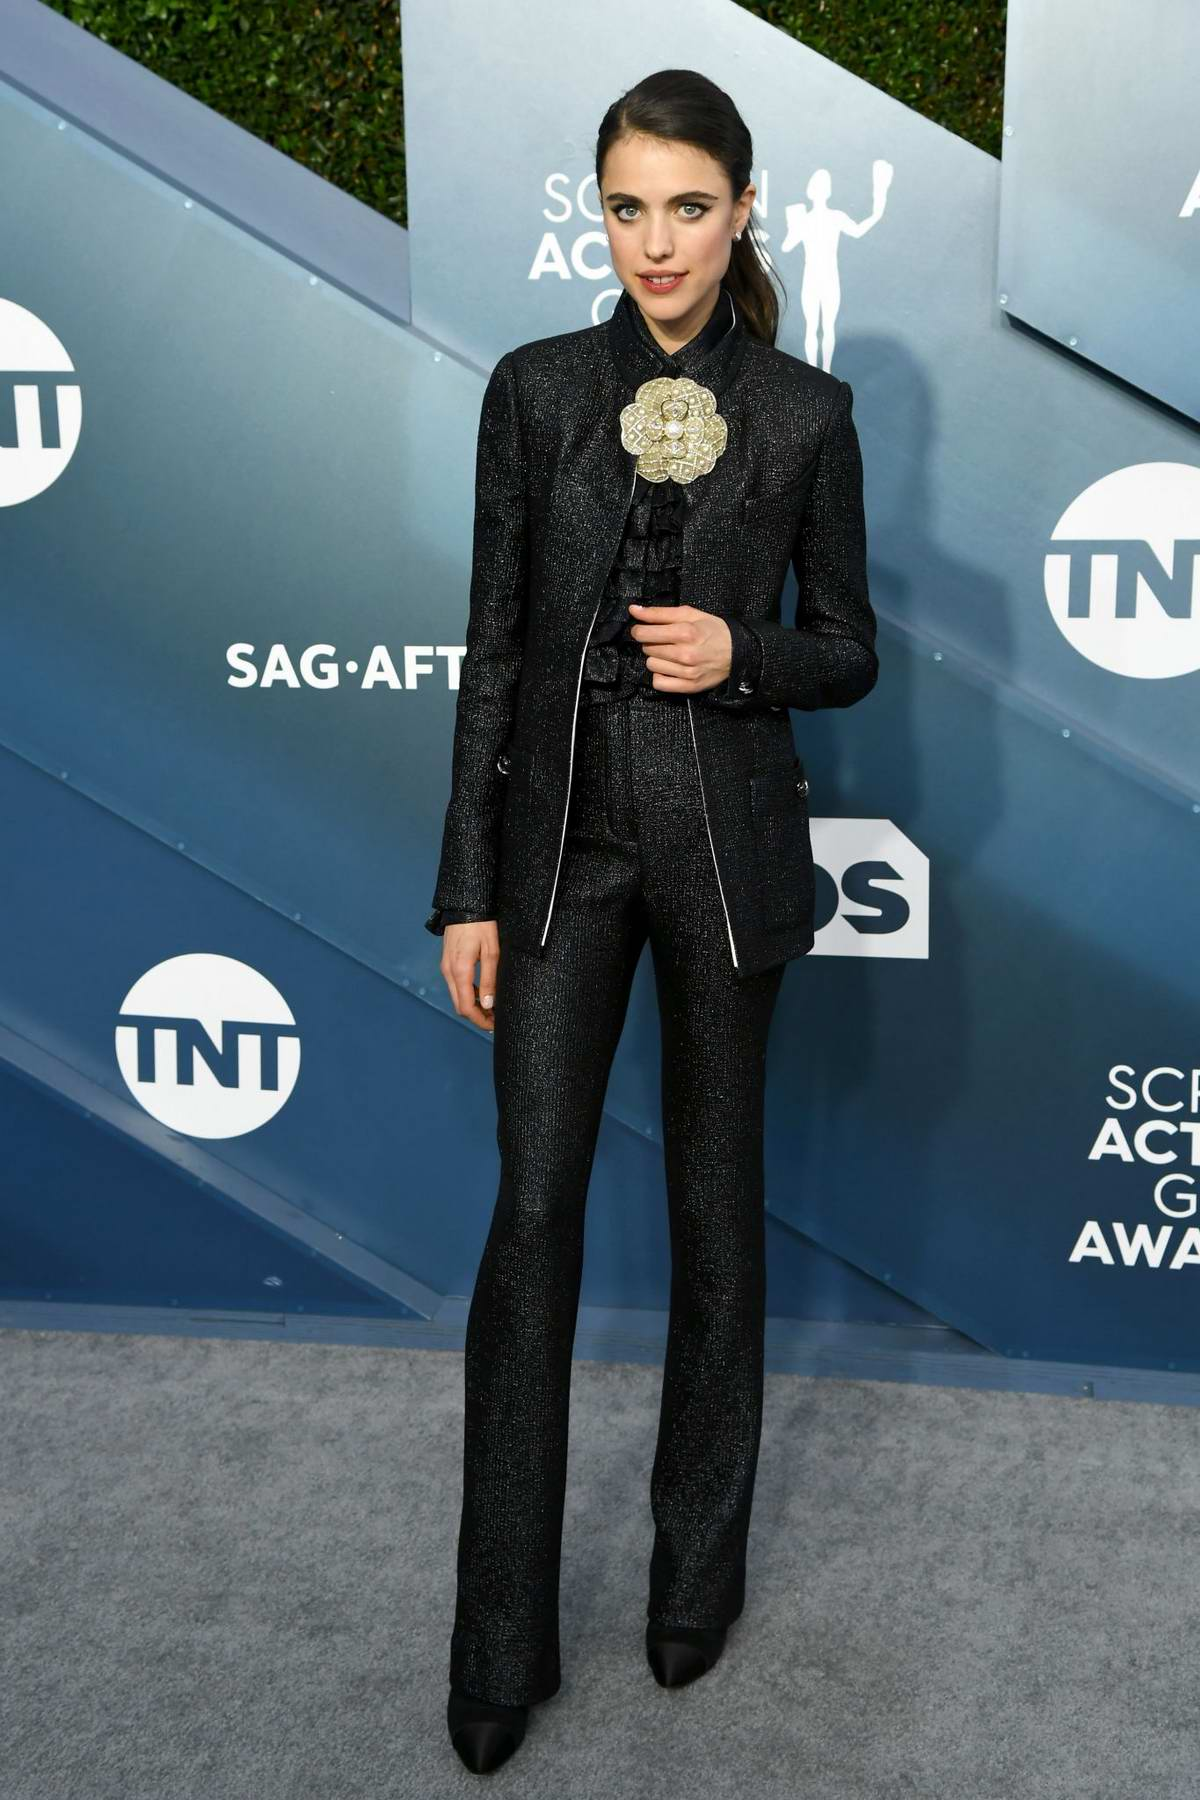 Margaret Qualley attends the 26th Annual Screen Actors Guild Awards at the Shrine Auditorium in Los Angeles